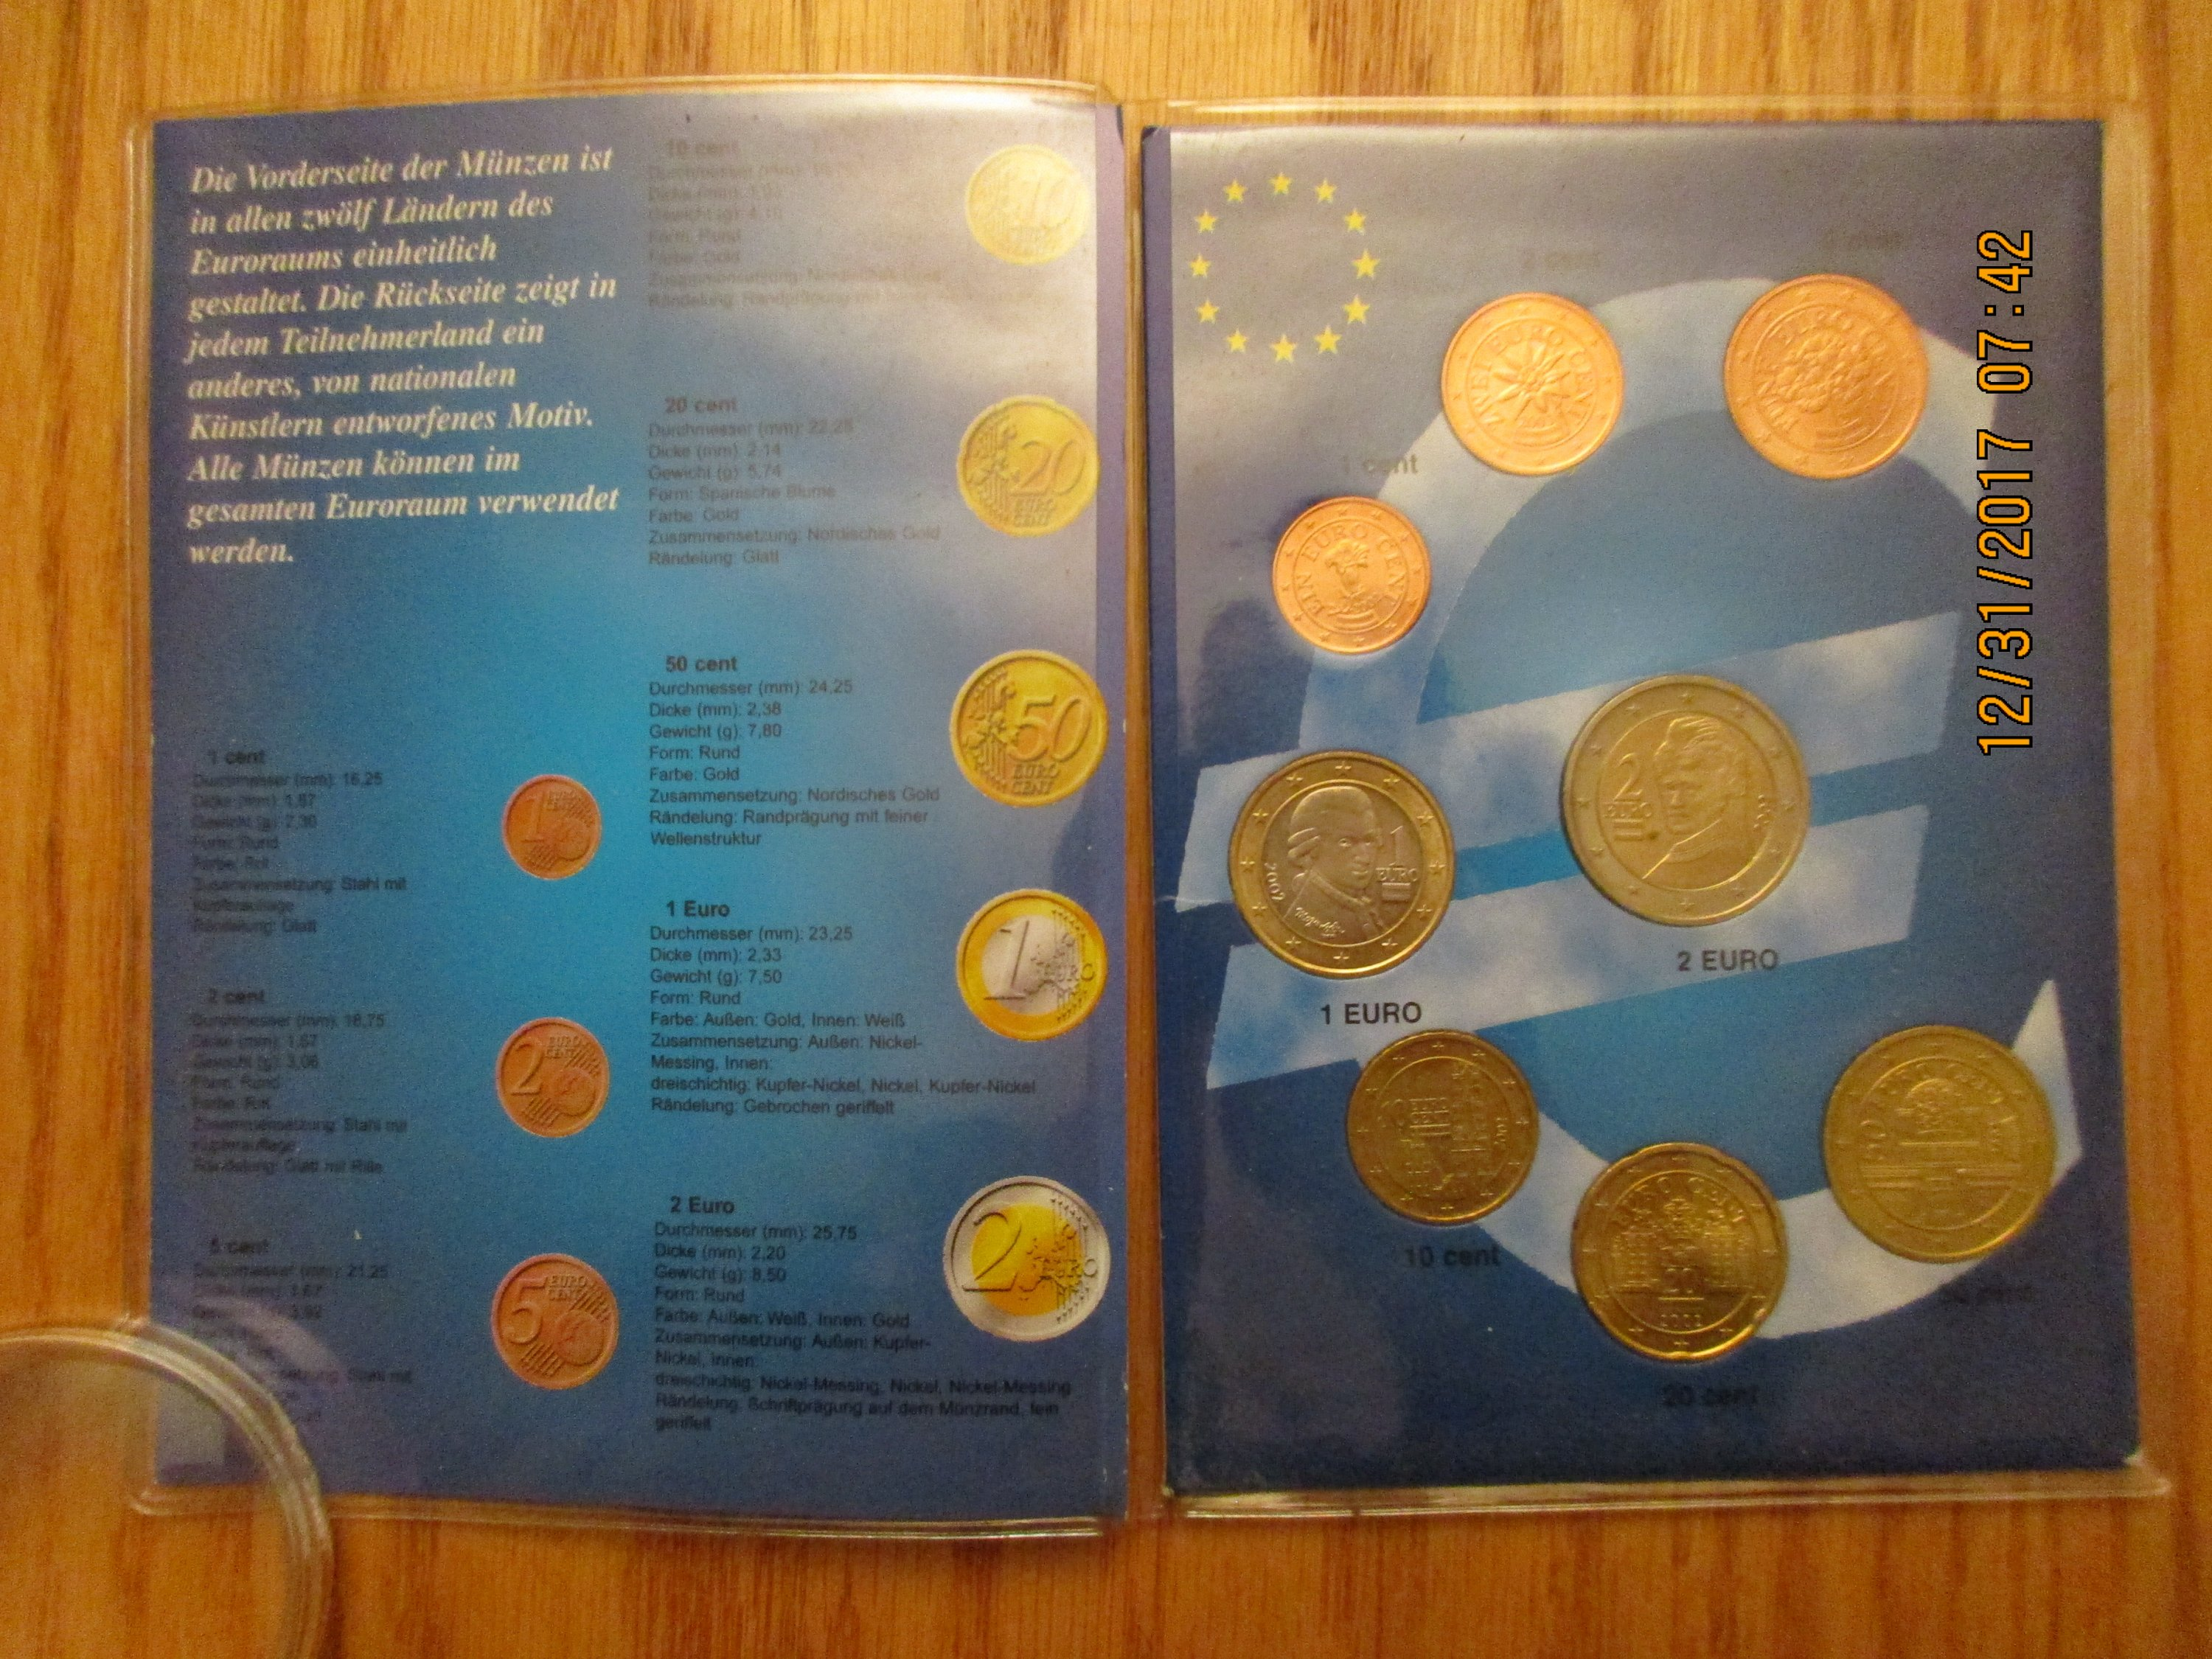 2002 2003 Austria Euro 8 Coin Brilliant Uncirculated Set 1 Cent To